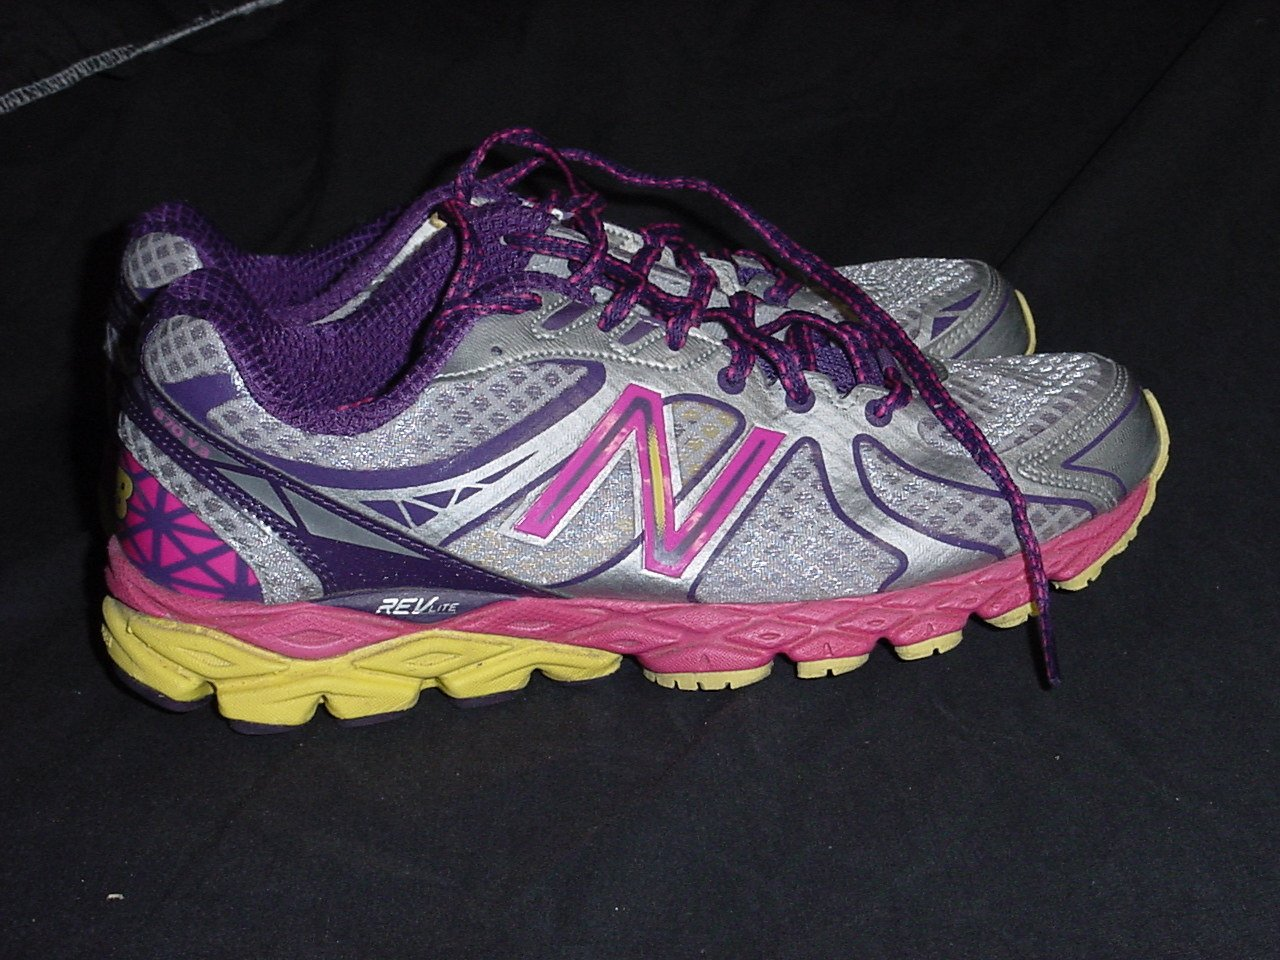 New Balance Women's 870 Size 9 D Bright Multi-Color Shoes 244